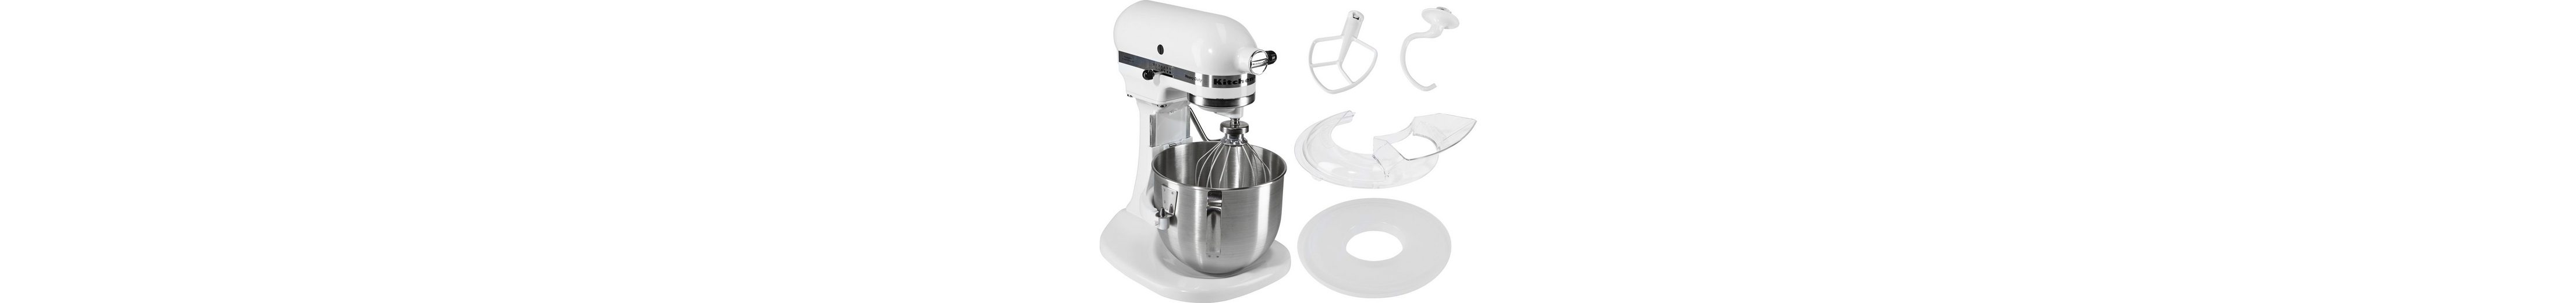 KitchenAid® Küchenmaschine »Heavy Duty 5KPM5EWH«, 4,81 Liter, 315 Watt